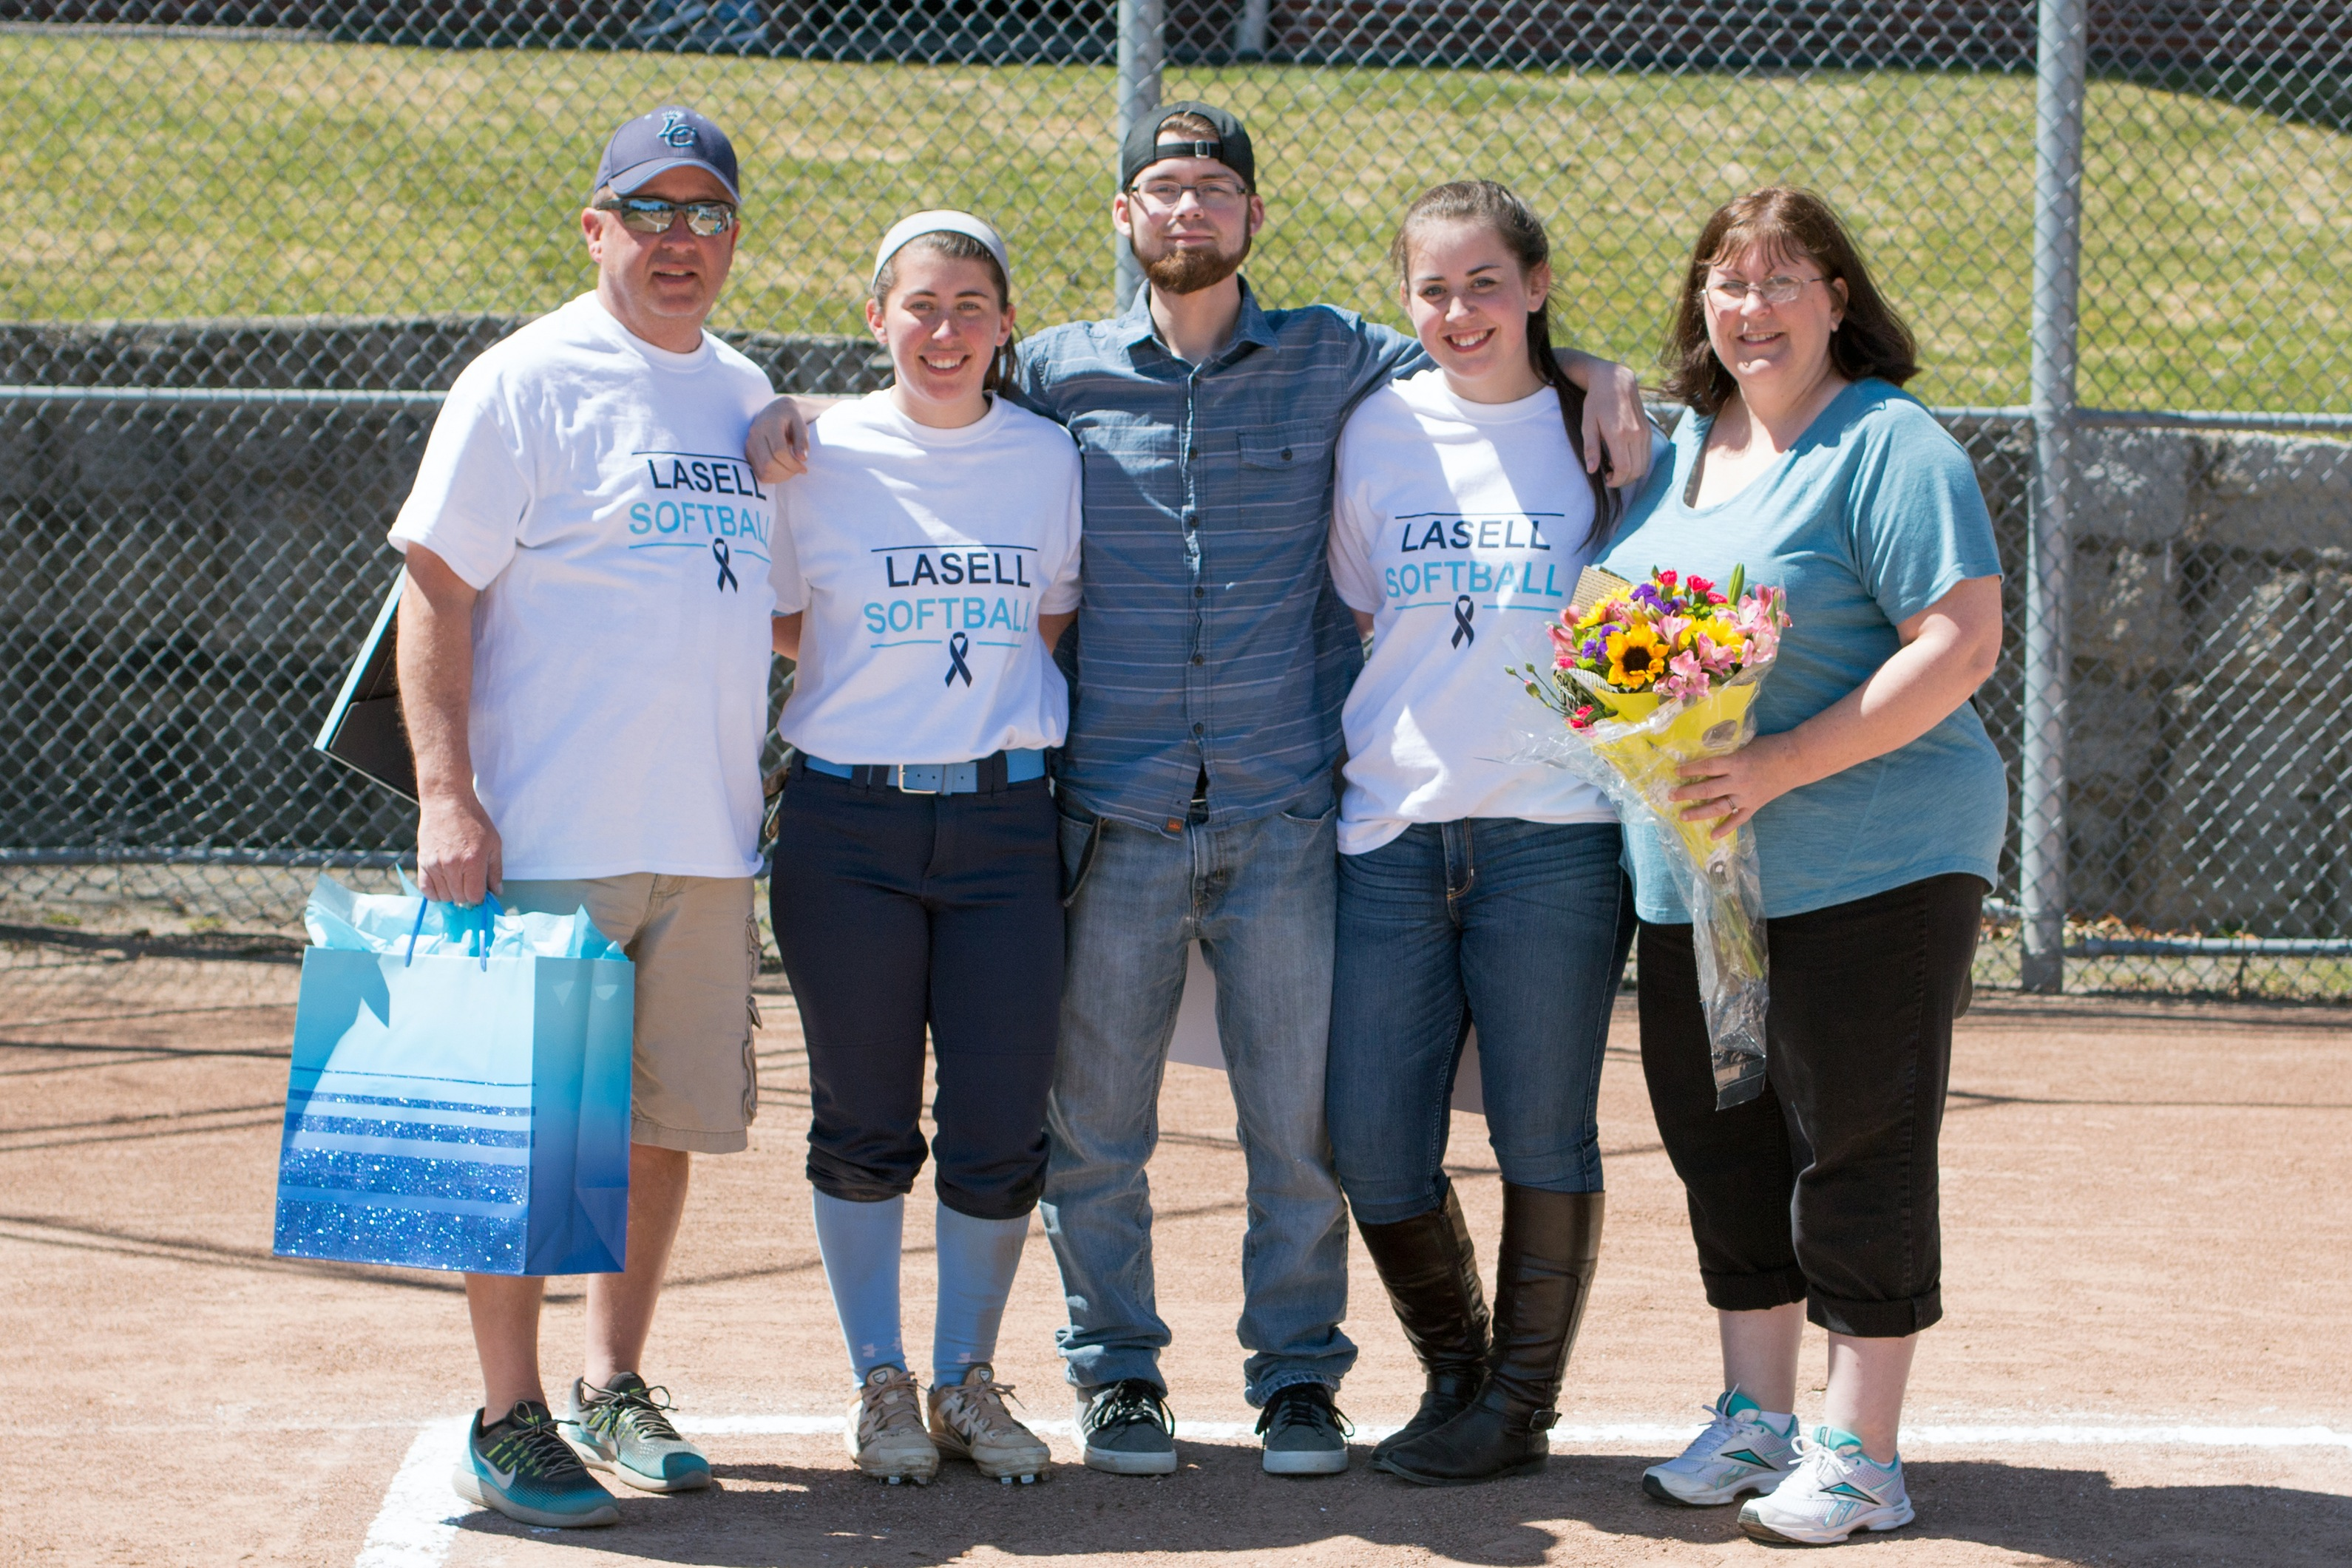 Lasell Softball splits doubleheader against Rivier on Senior Day